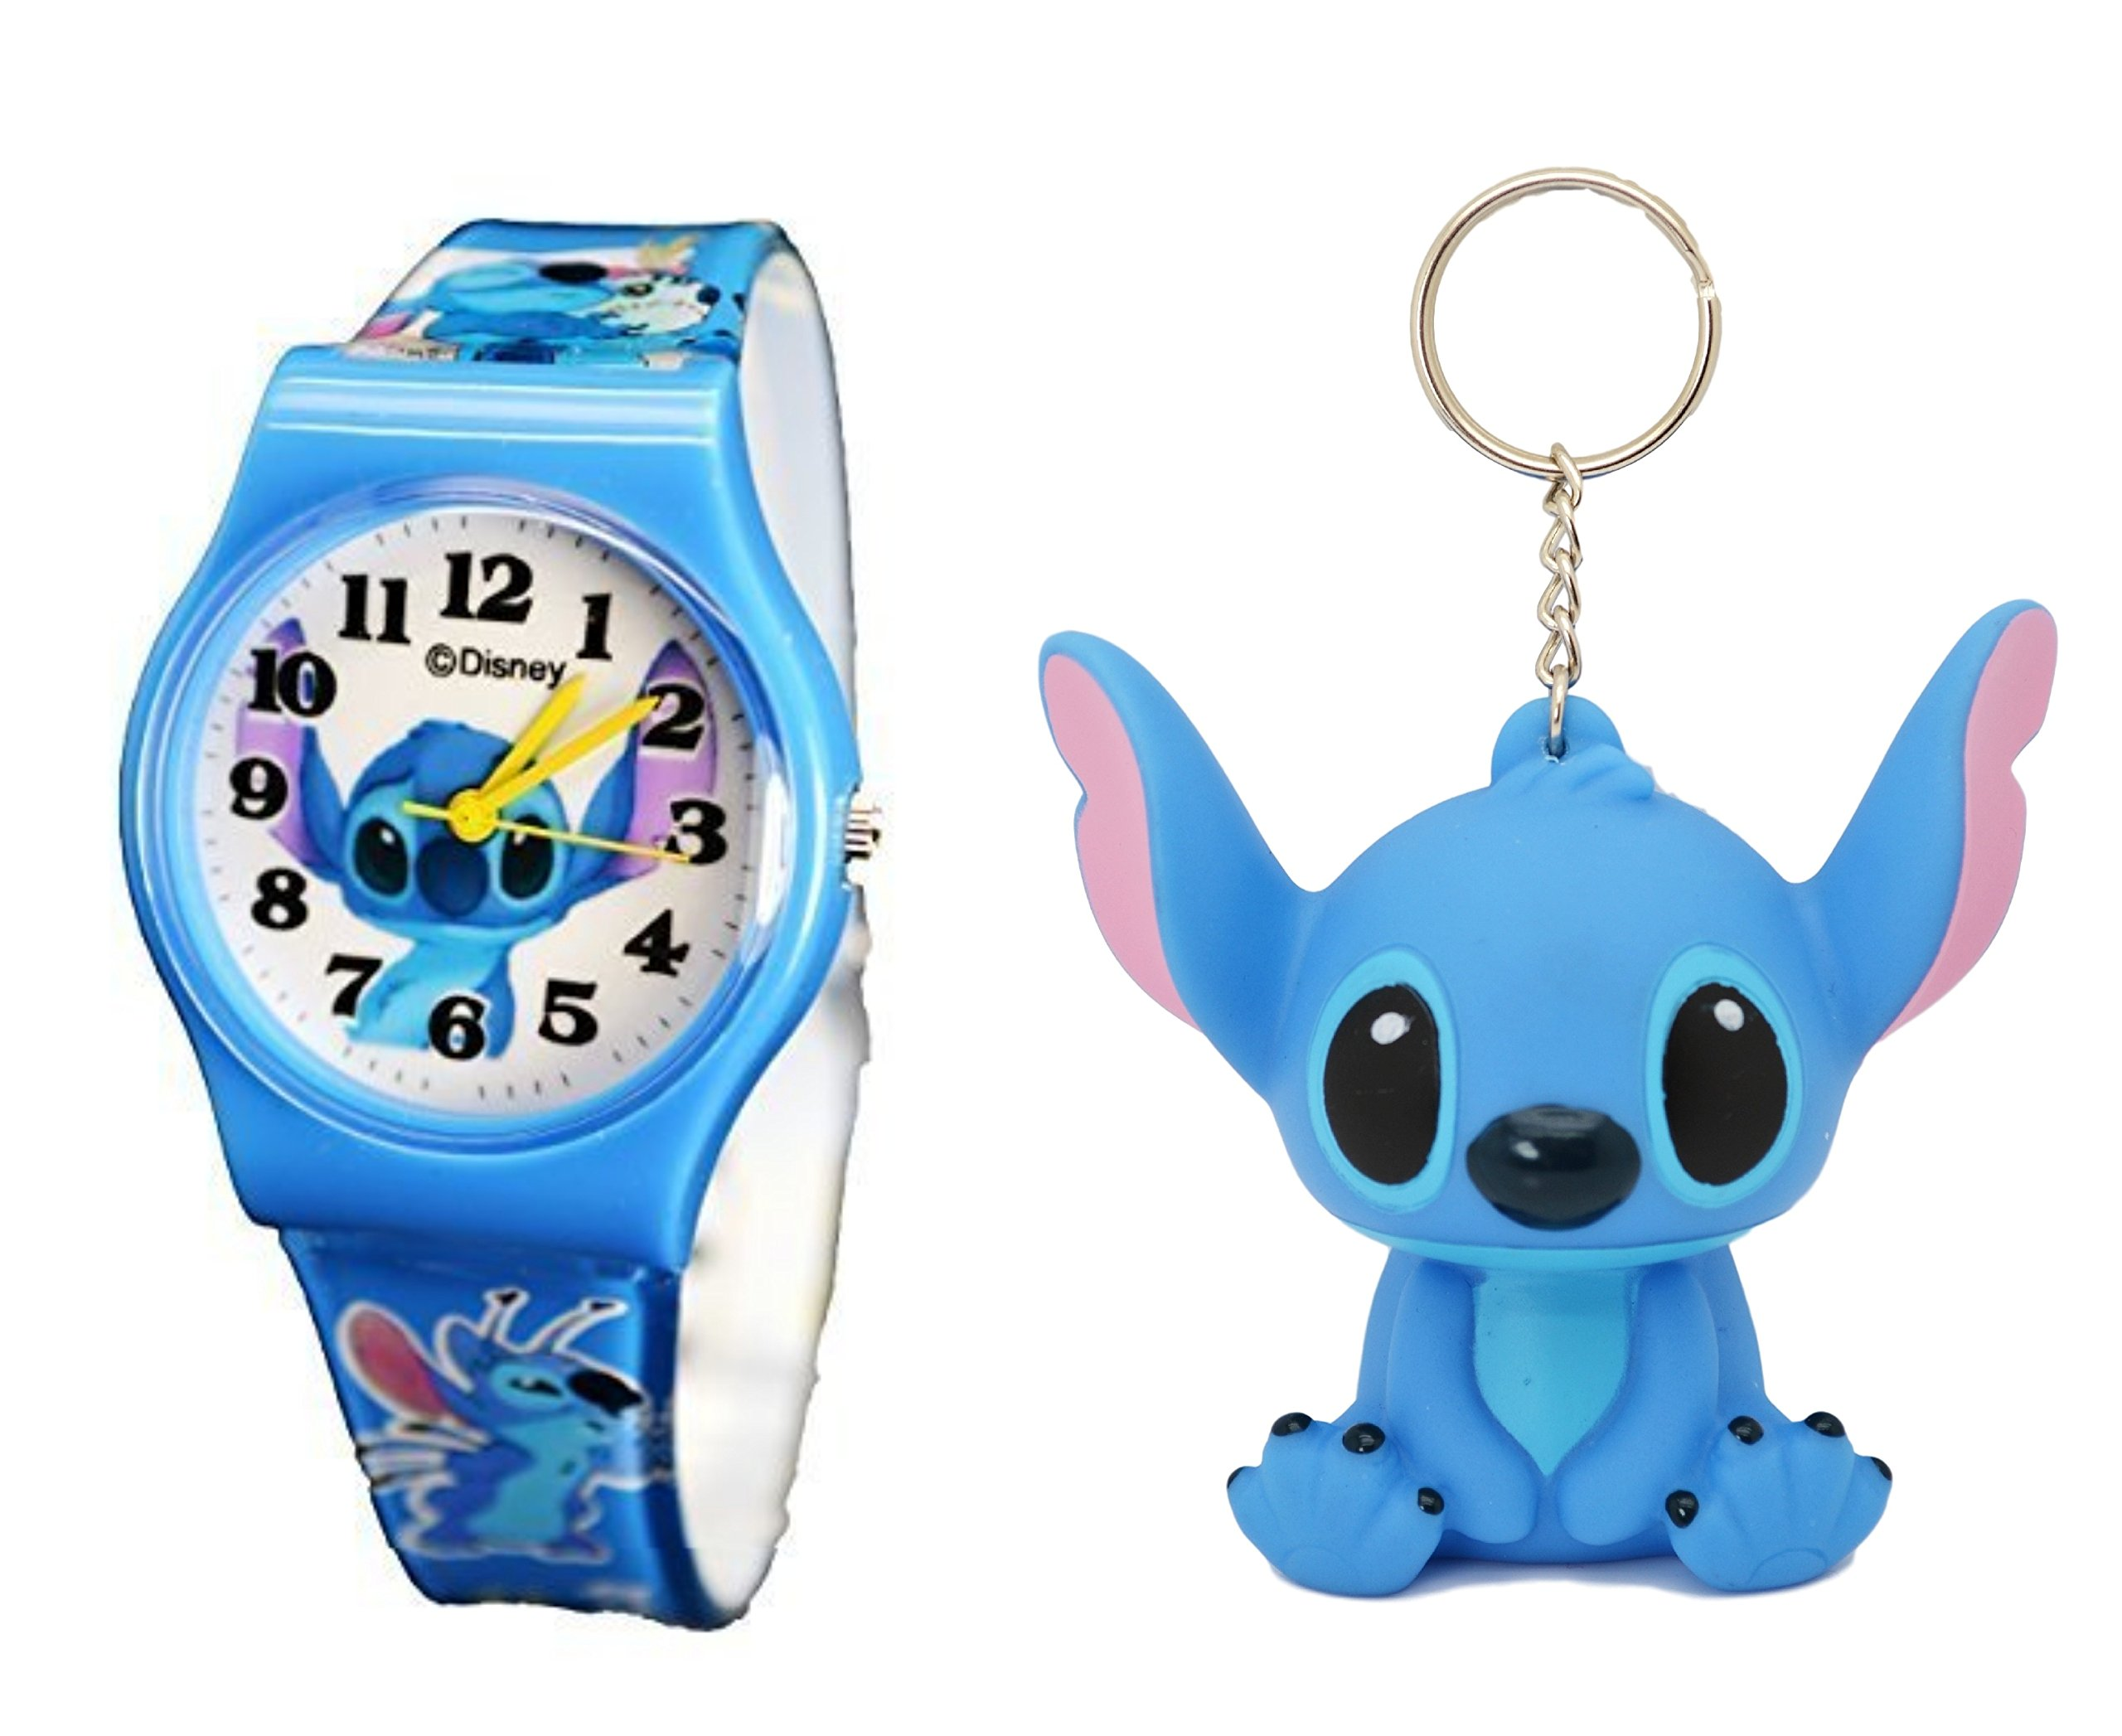 Disney Lilo & Stitch Gift Set Watch & Keychain For Children